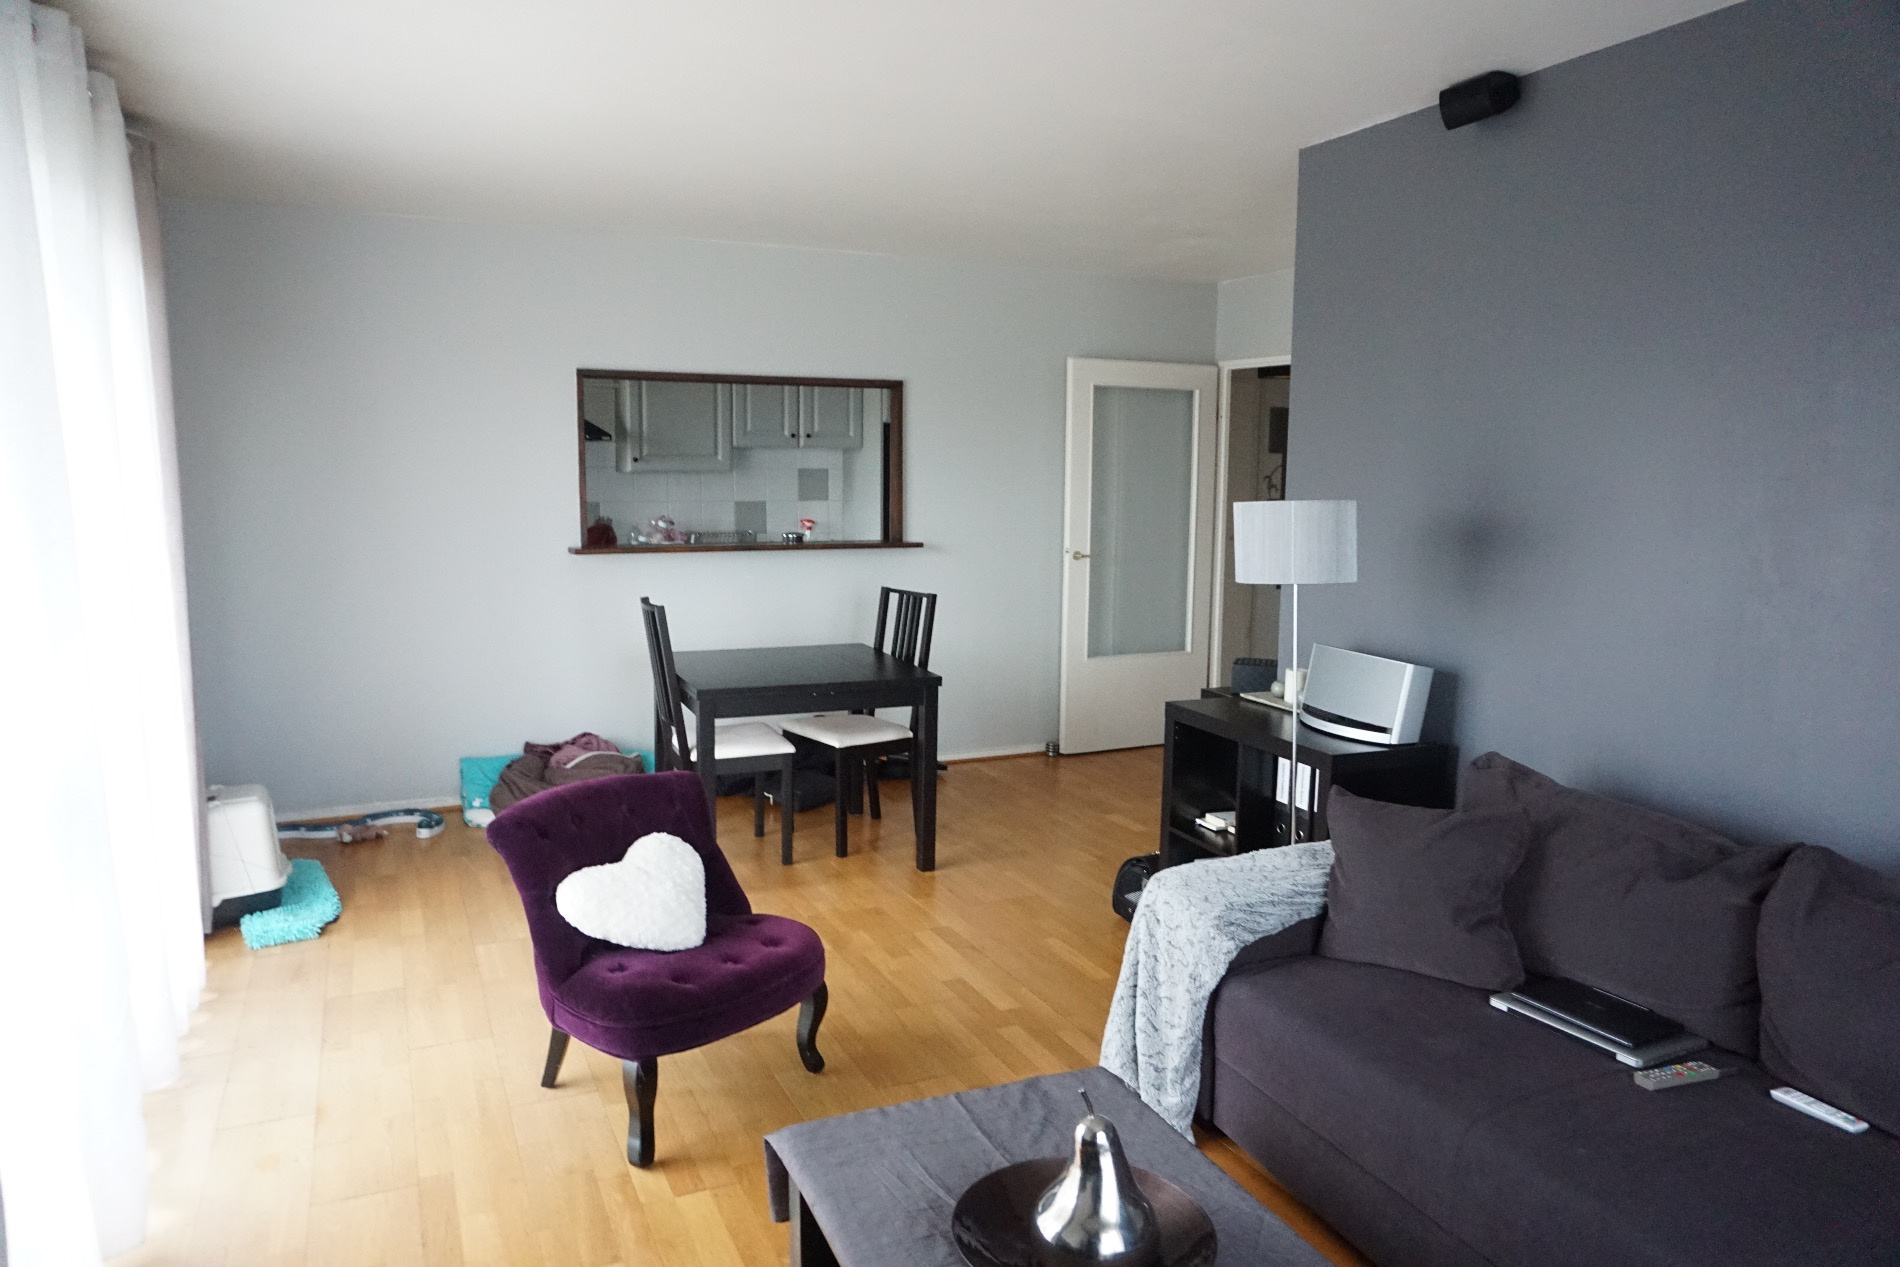 Vente appartement box en sous sol d 39 un parking ext rieur for Prix d un sous sol